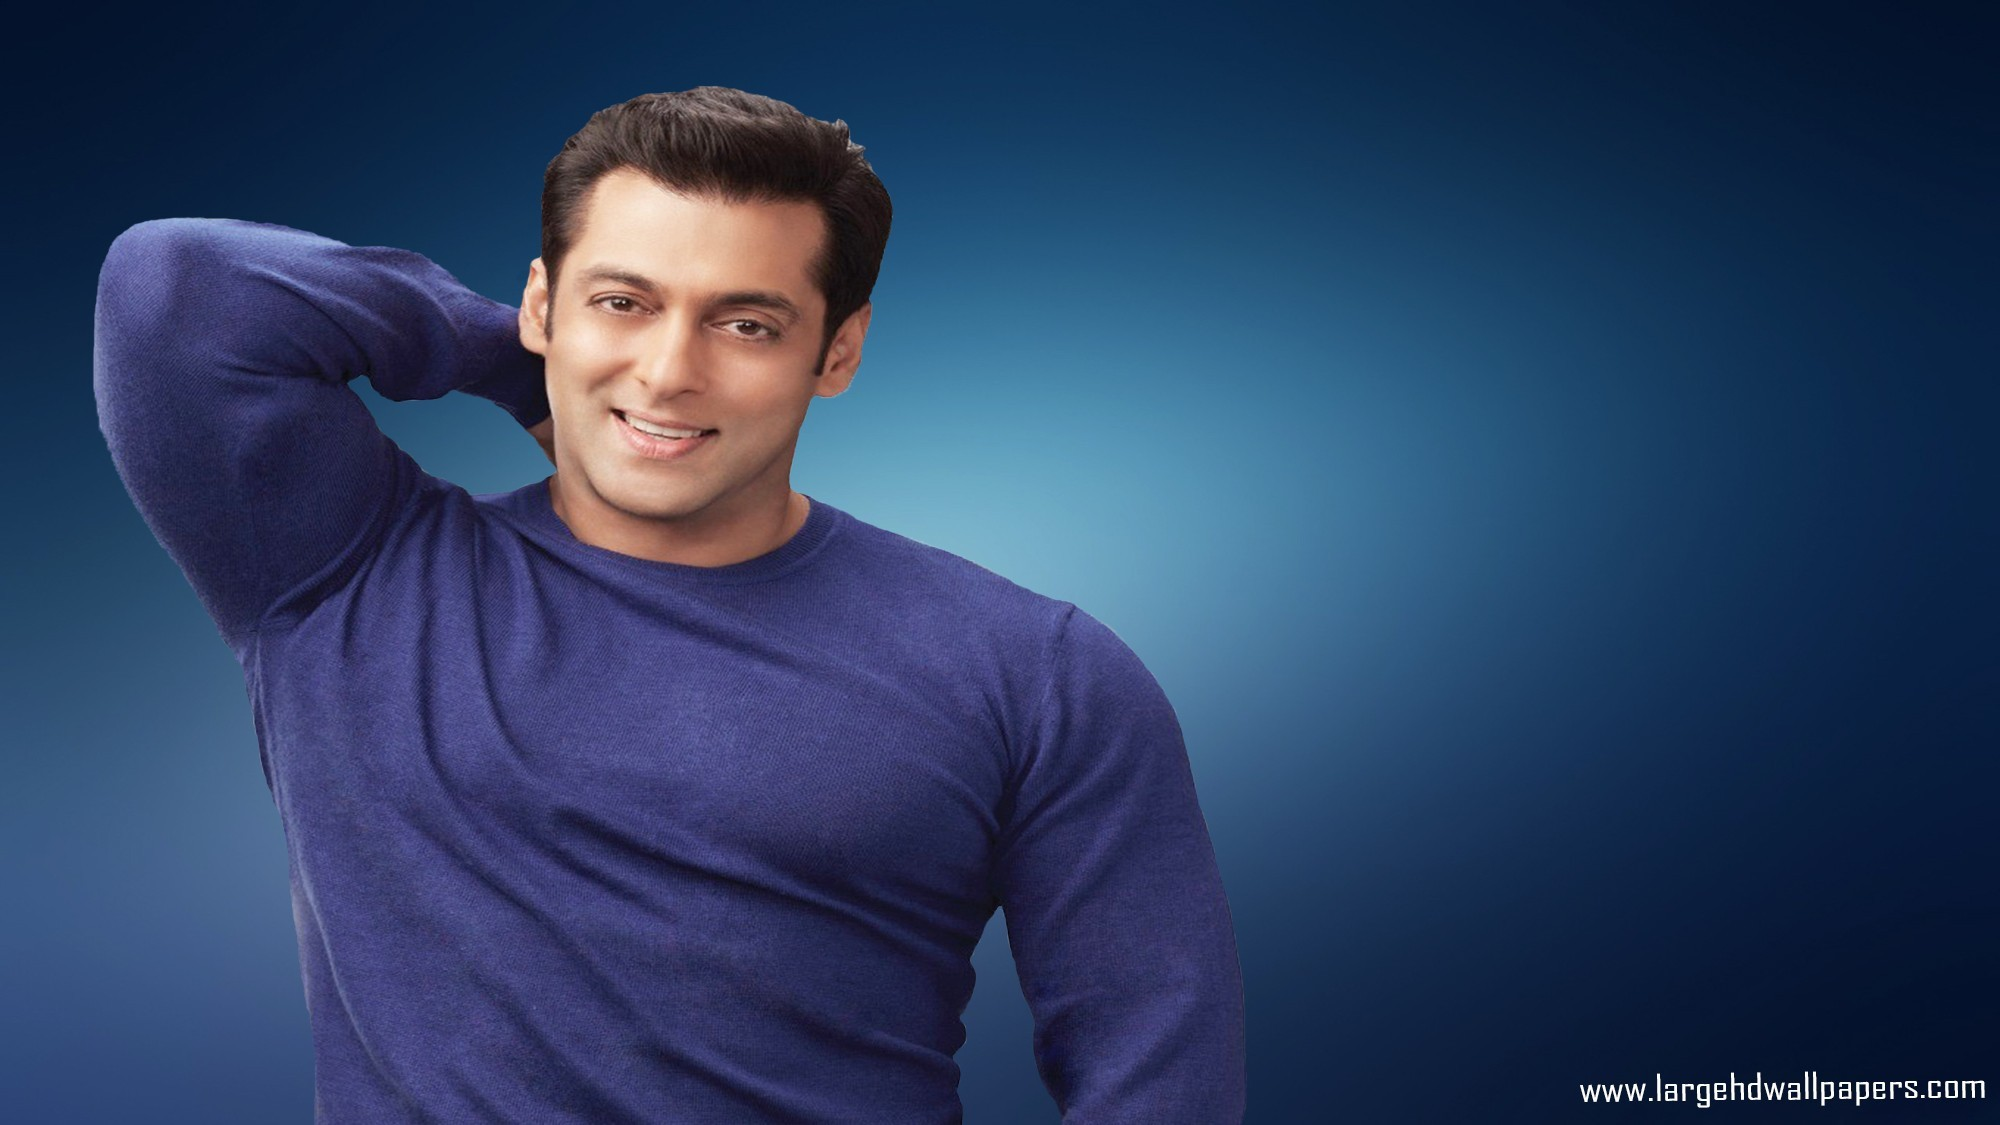 2000x1125 Salman, Khan, Smile, Face, Blue, Desktop, HD, Wallpapers, Bollywood Actor,  Indian Man, Widescreen, 2000×1125 Wallpaper HD